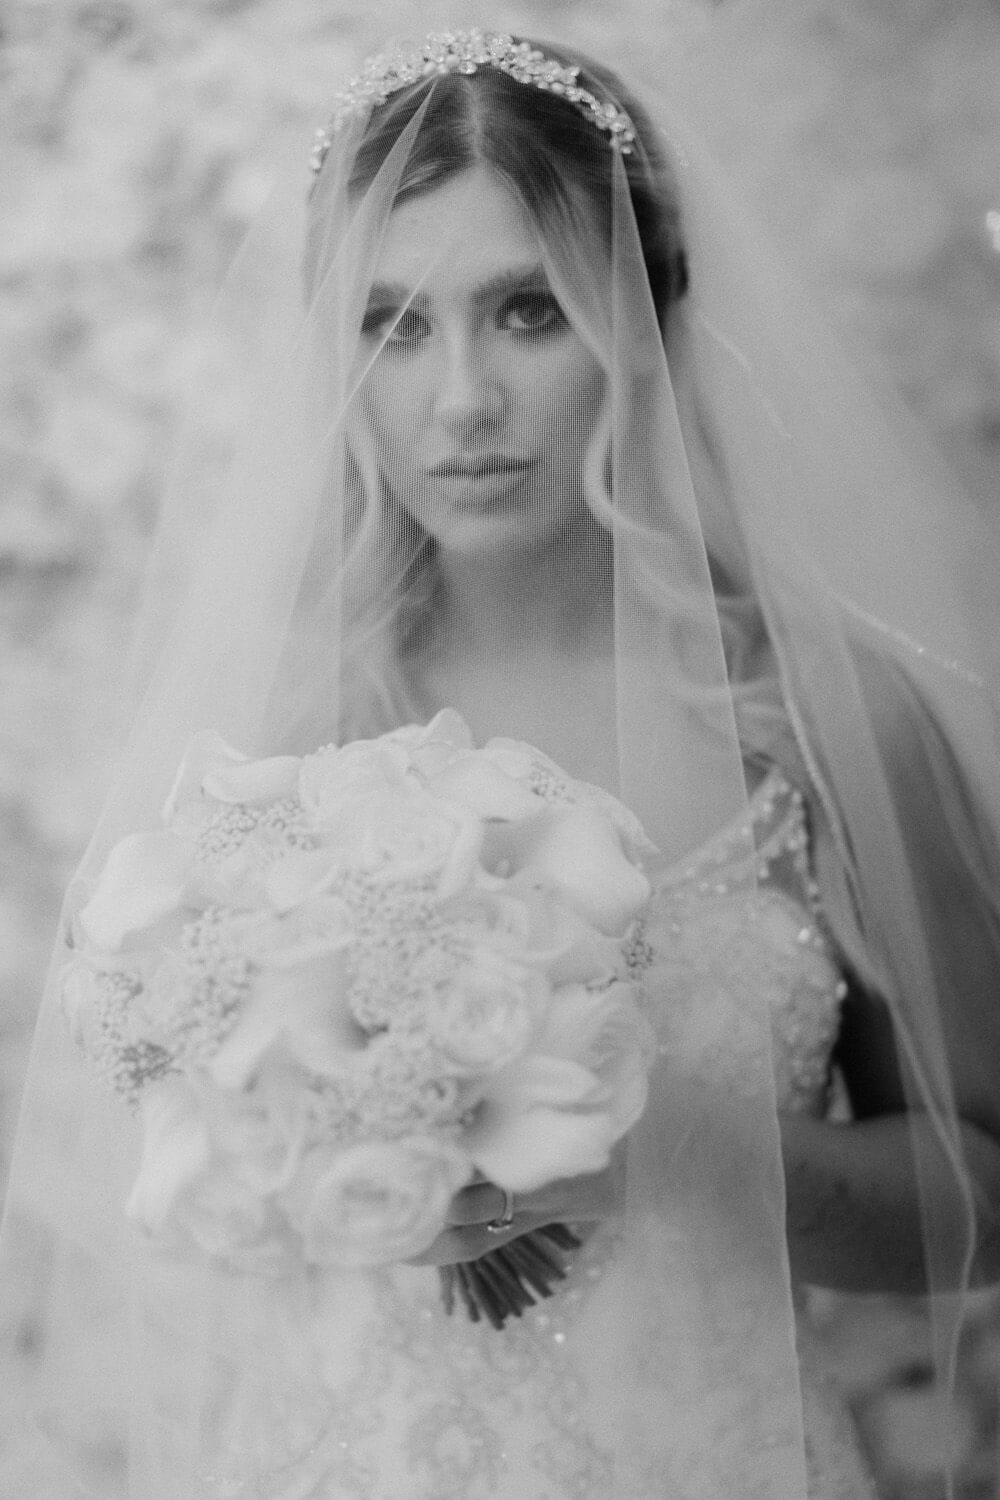 Black and white arty portrait of bride